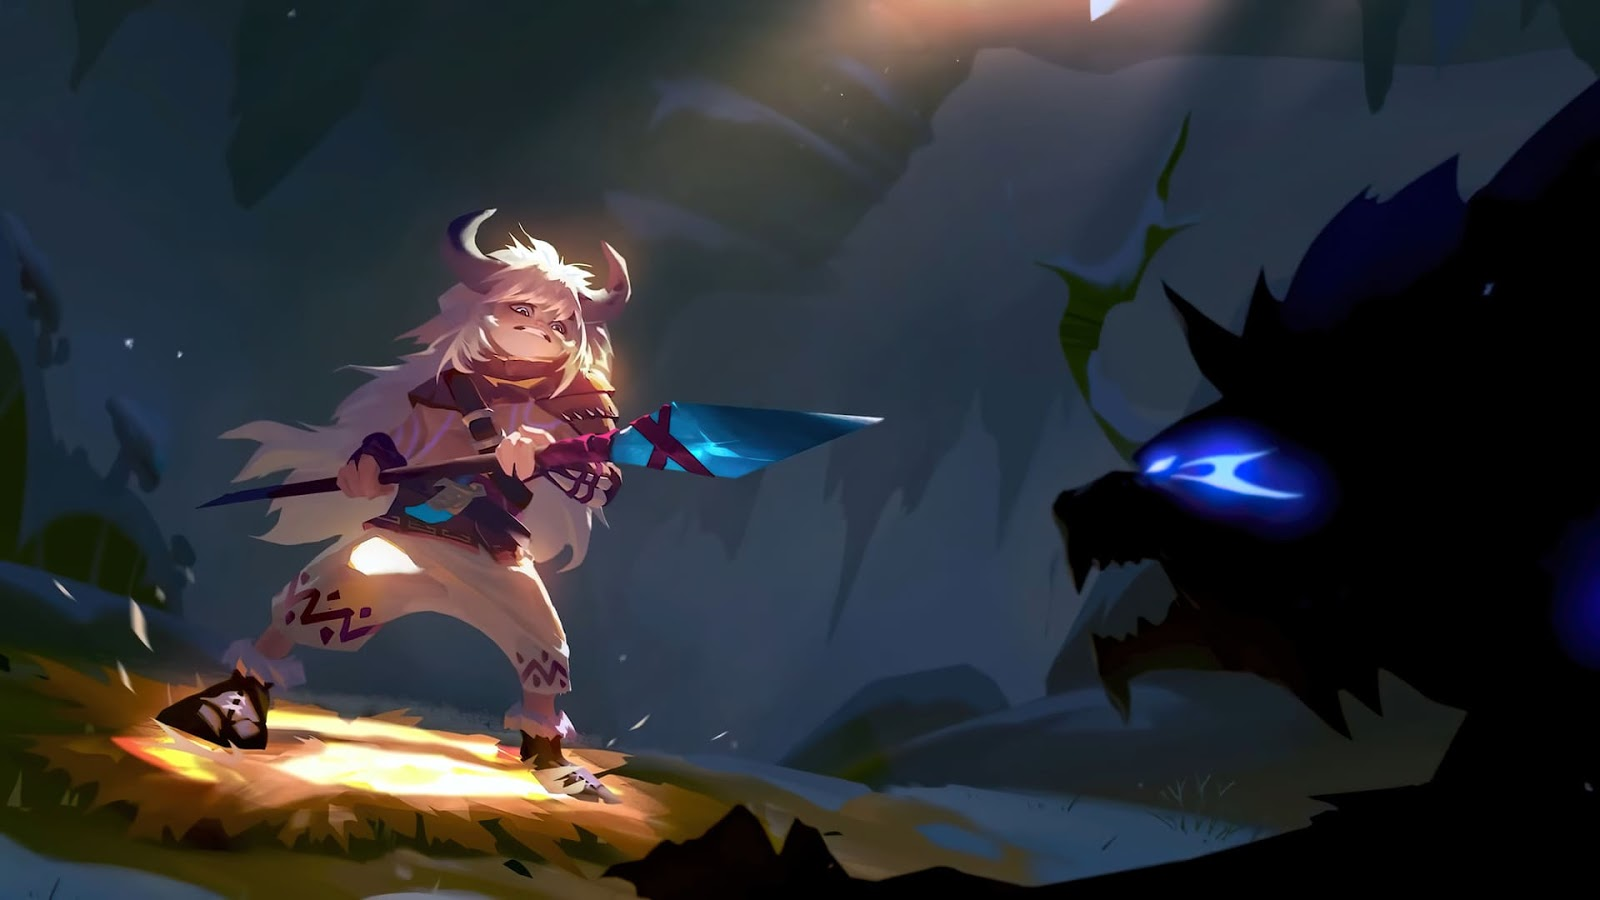 Wallpaper Popol and Kupa Icefield Companions V1 Skin Mobile Legends HD for PC